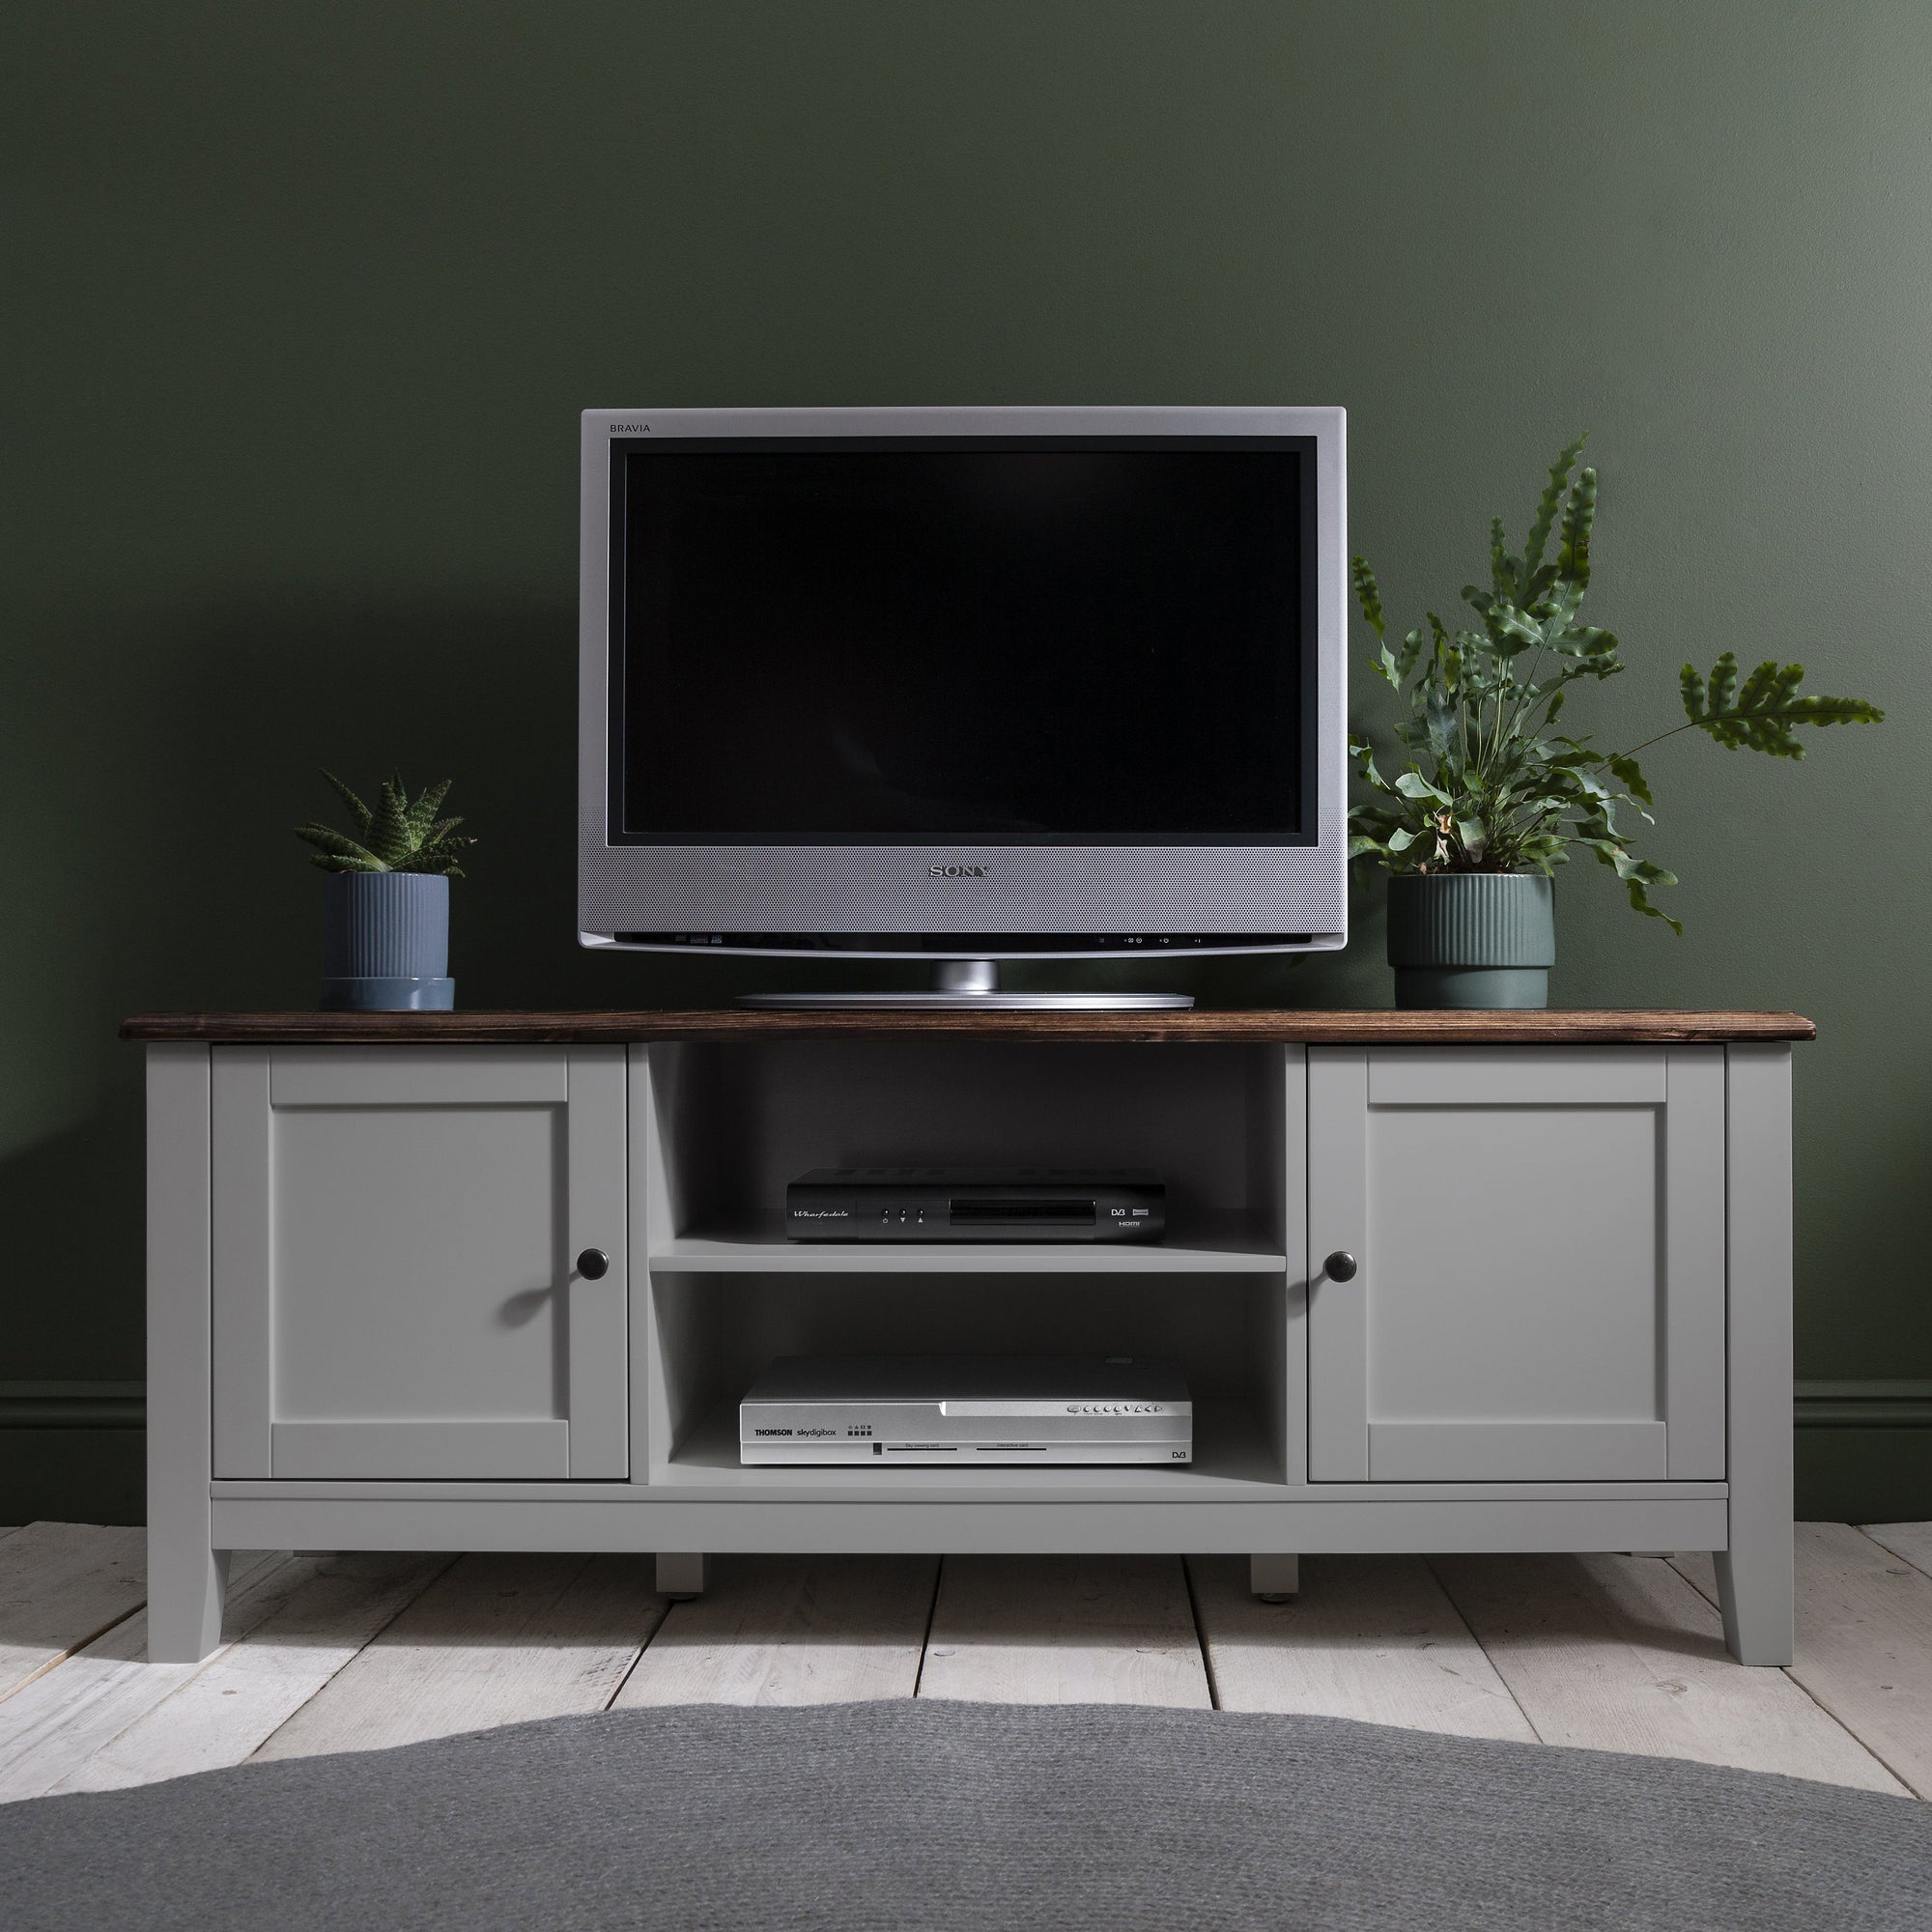 Grey Wooden TV Unit with storage - Chatsworth Cabinet - Laura James